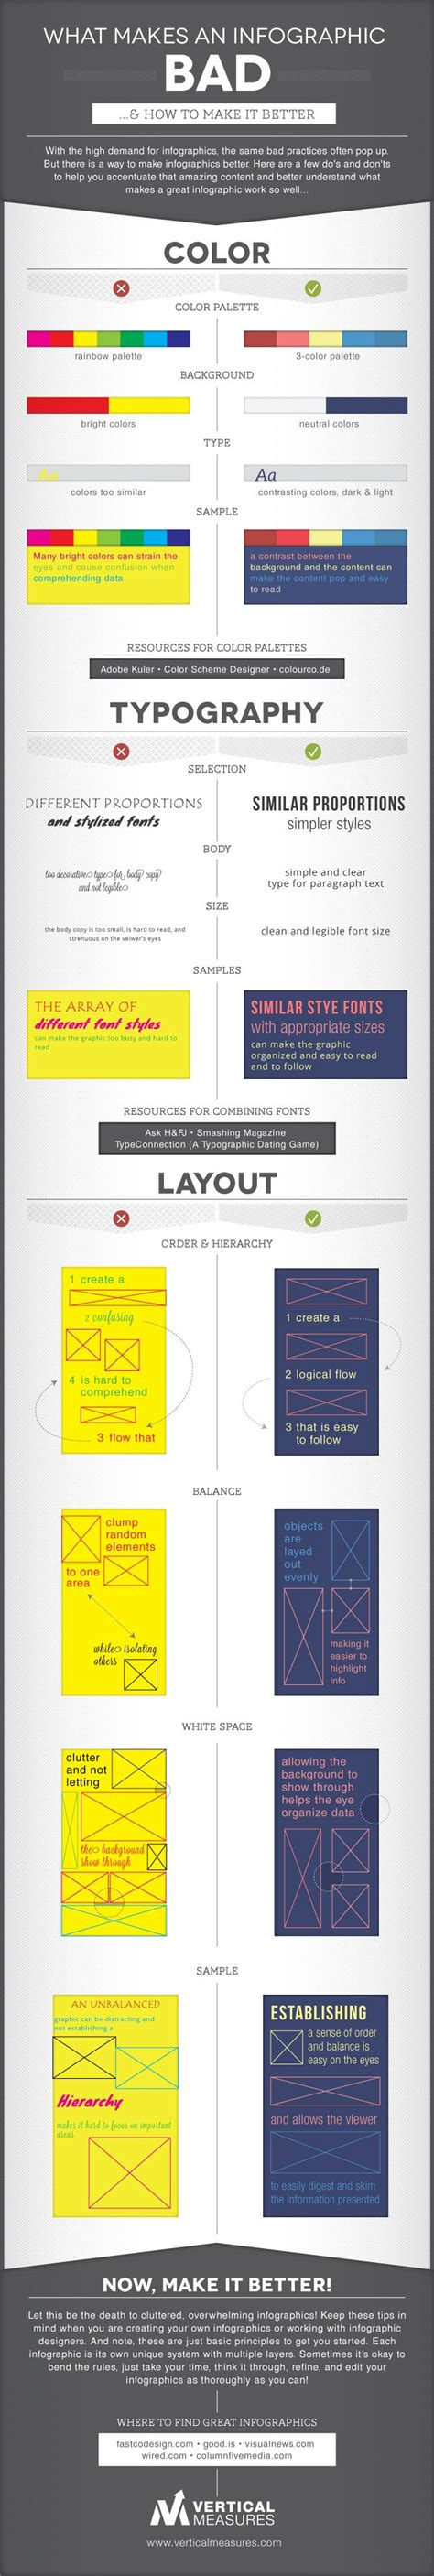 infographics how to print better what makes an infographic bad how to make it better by vertical measures